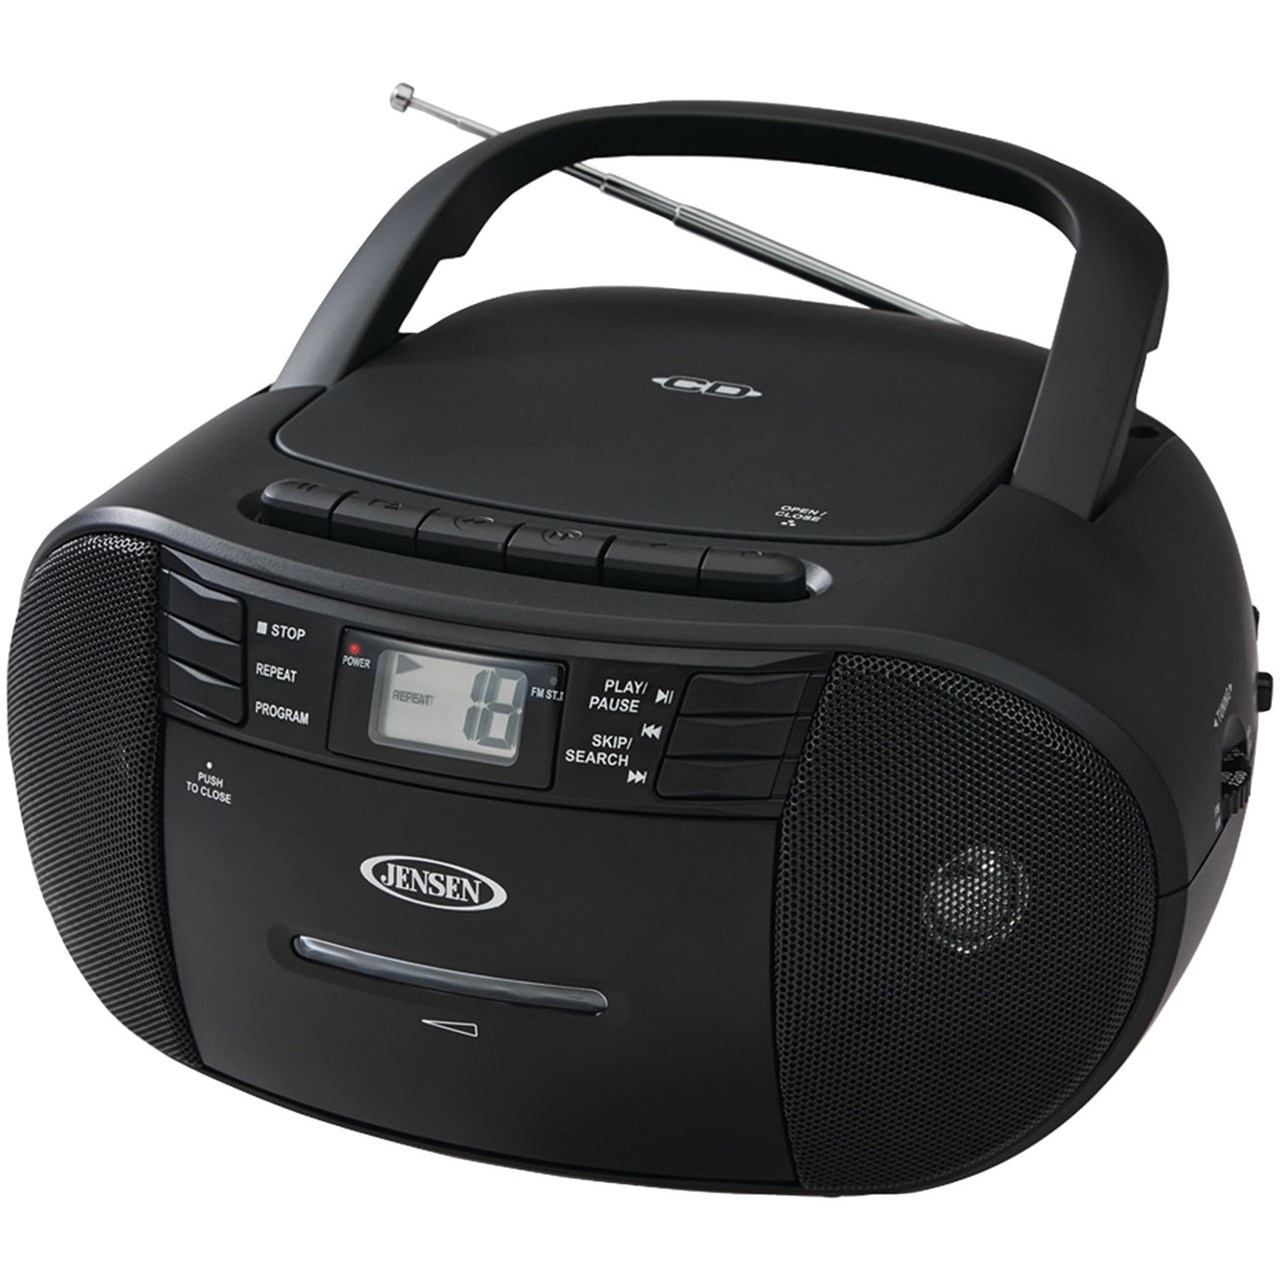 maxiaids jensen cd 545 portable stereo cd player cassette am fm radio. Black Bedroom Furniture Sets. Home Design Ideas